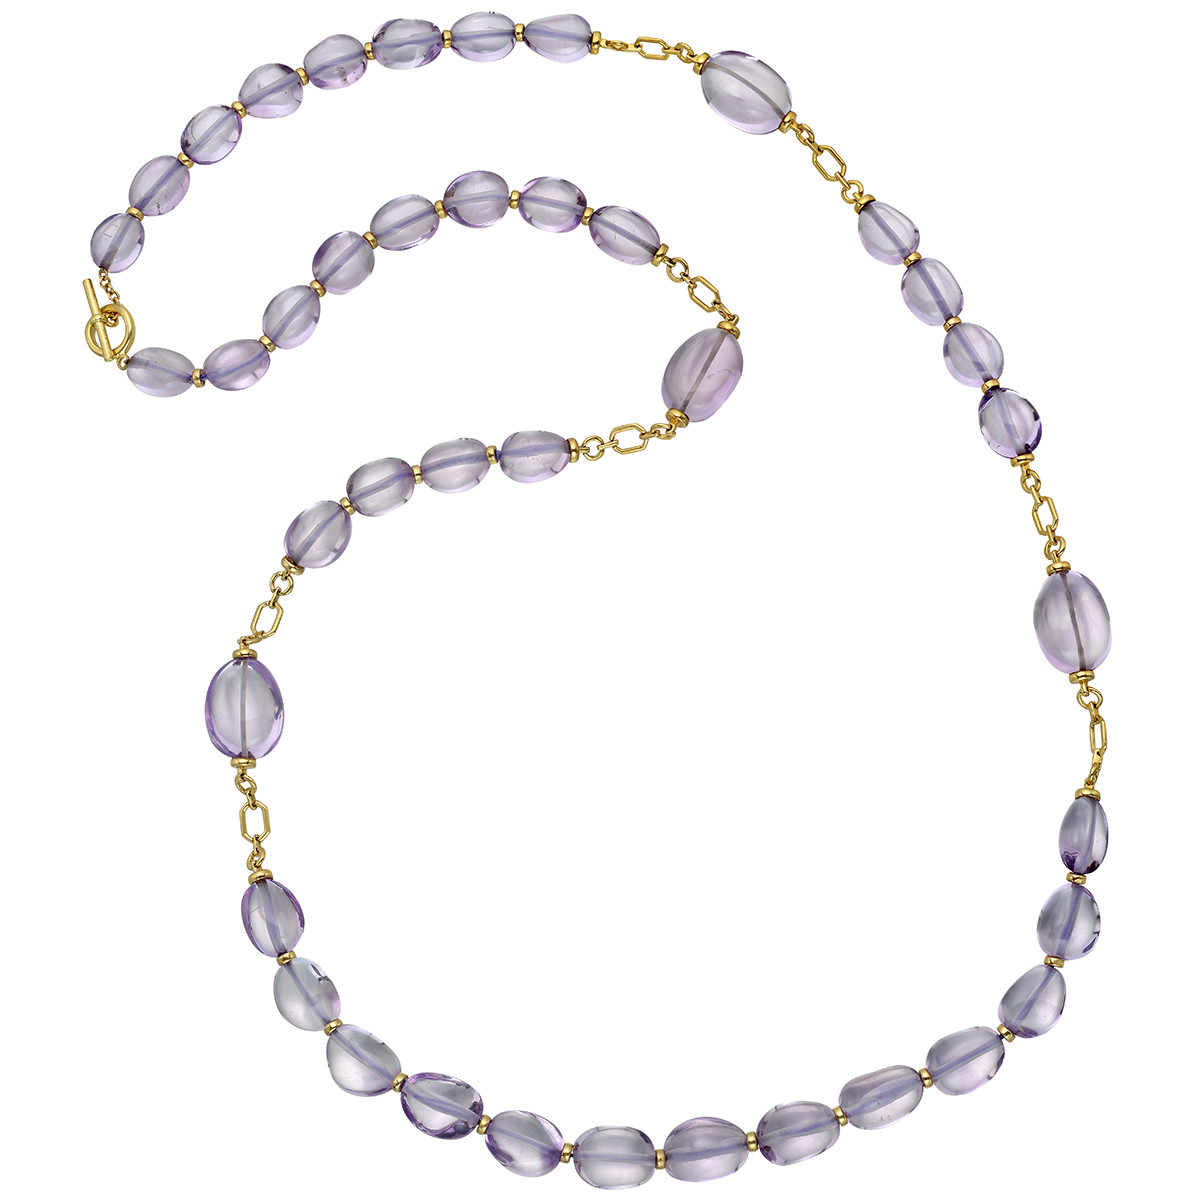 18k Yellow Gold & Amethyst Bead Long Necklace